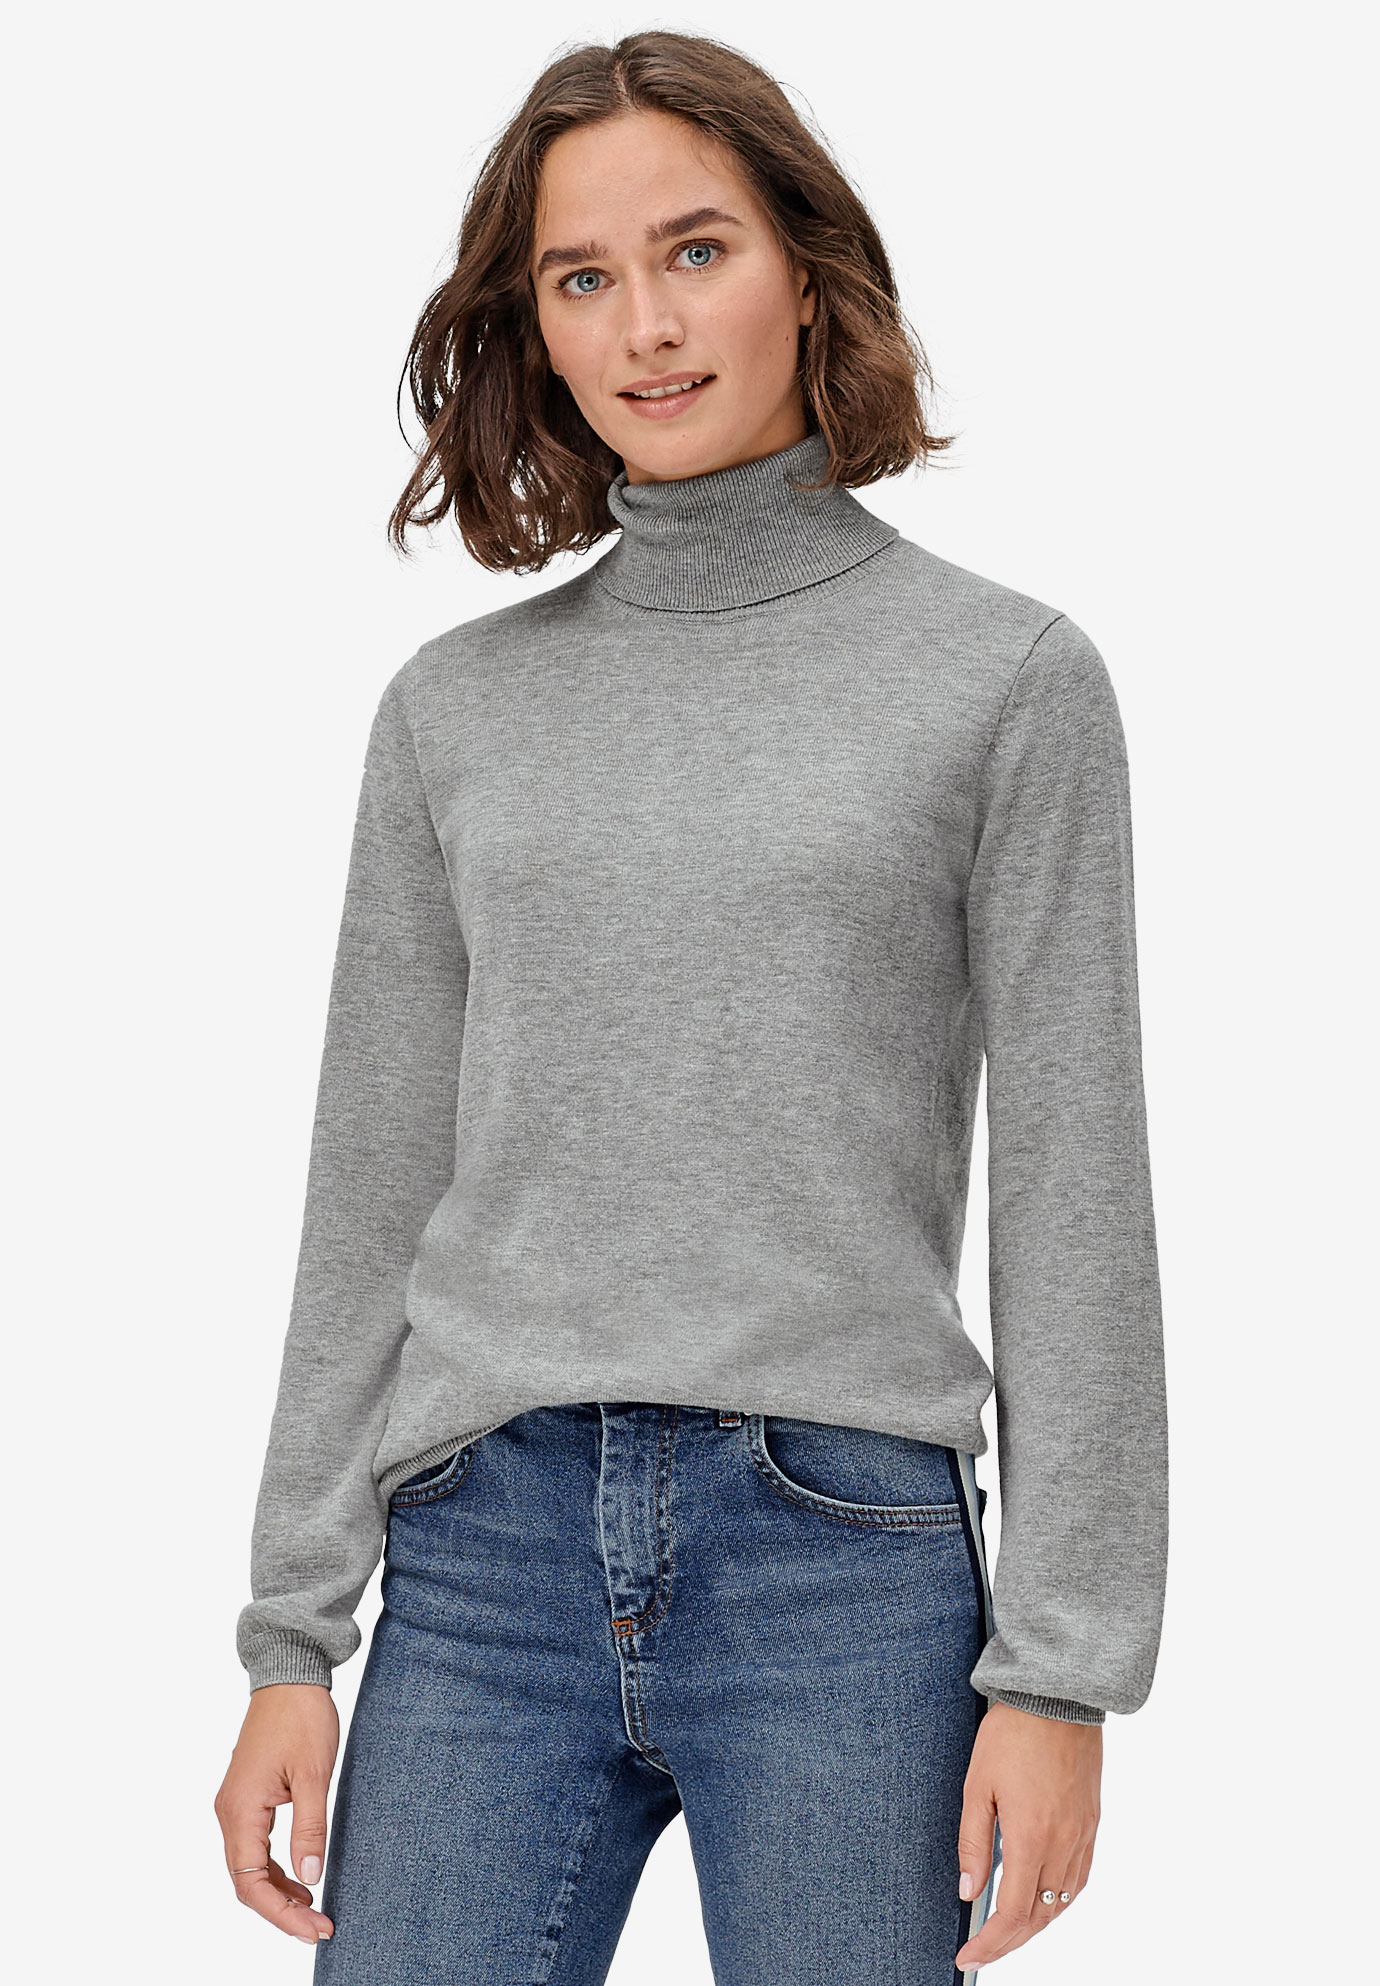 Blouson Sleeve Turtleneck,